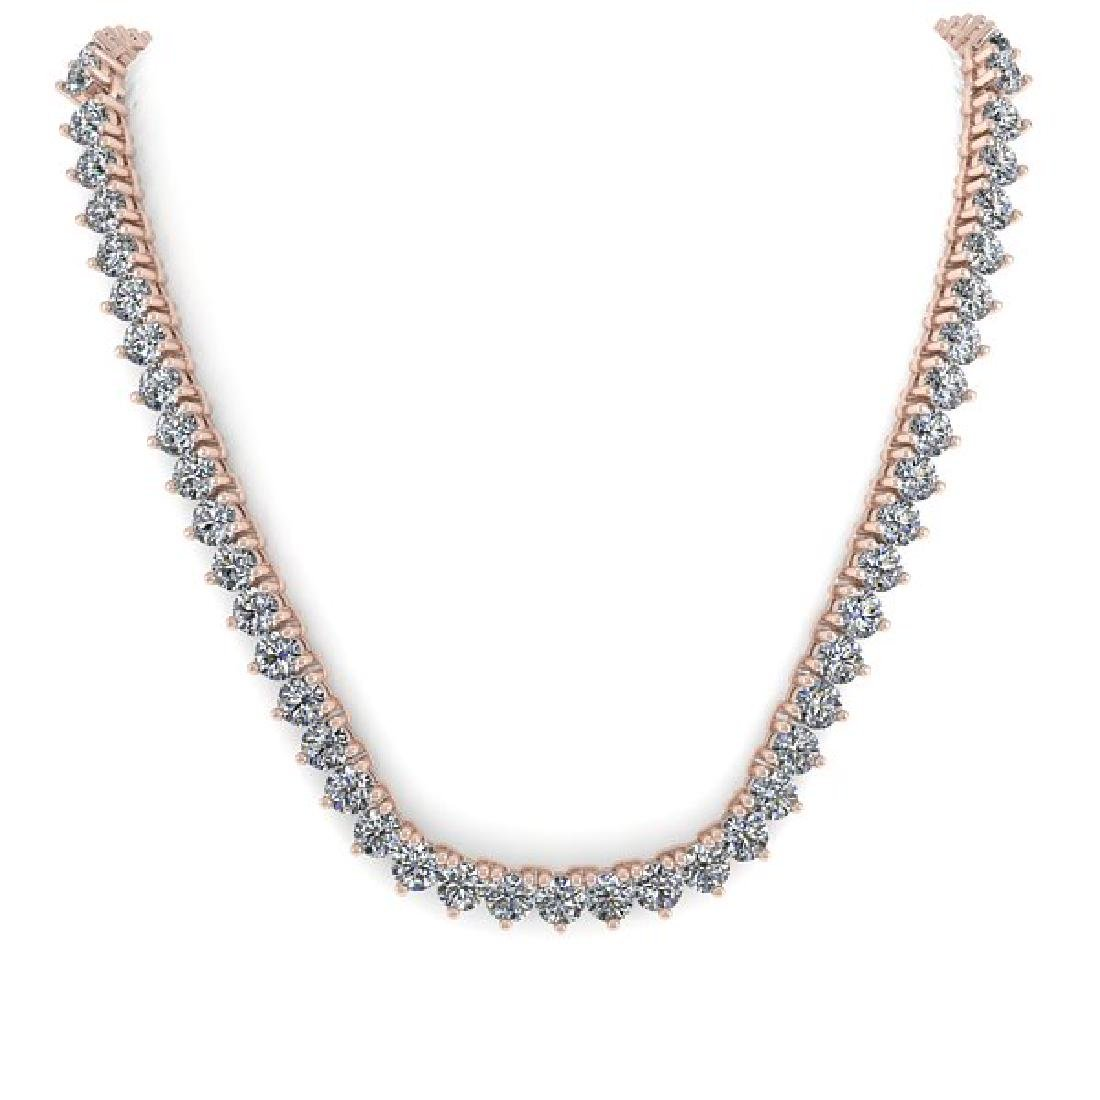 53 CTW Solitaire SI Diamond Necklace 18K Rose Gold - 3